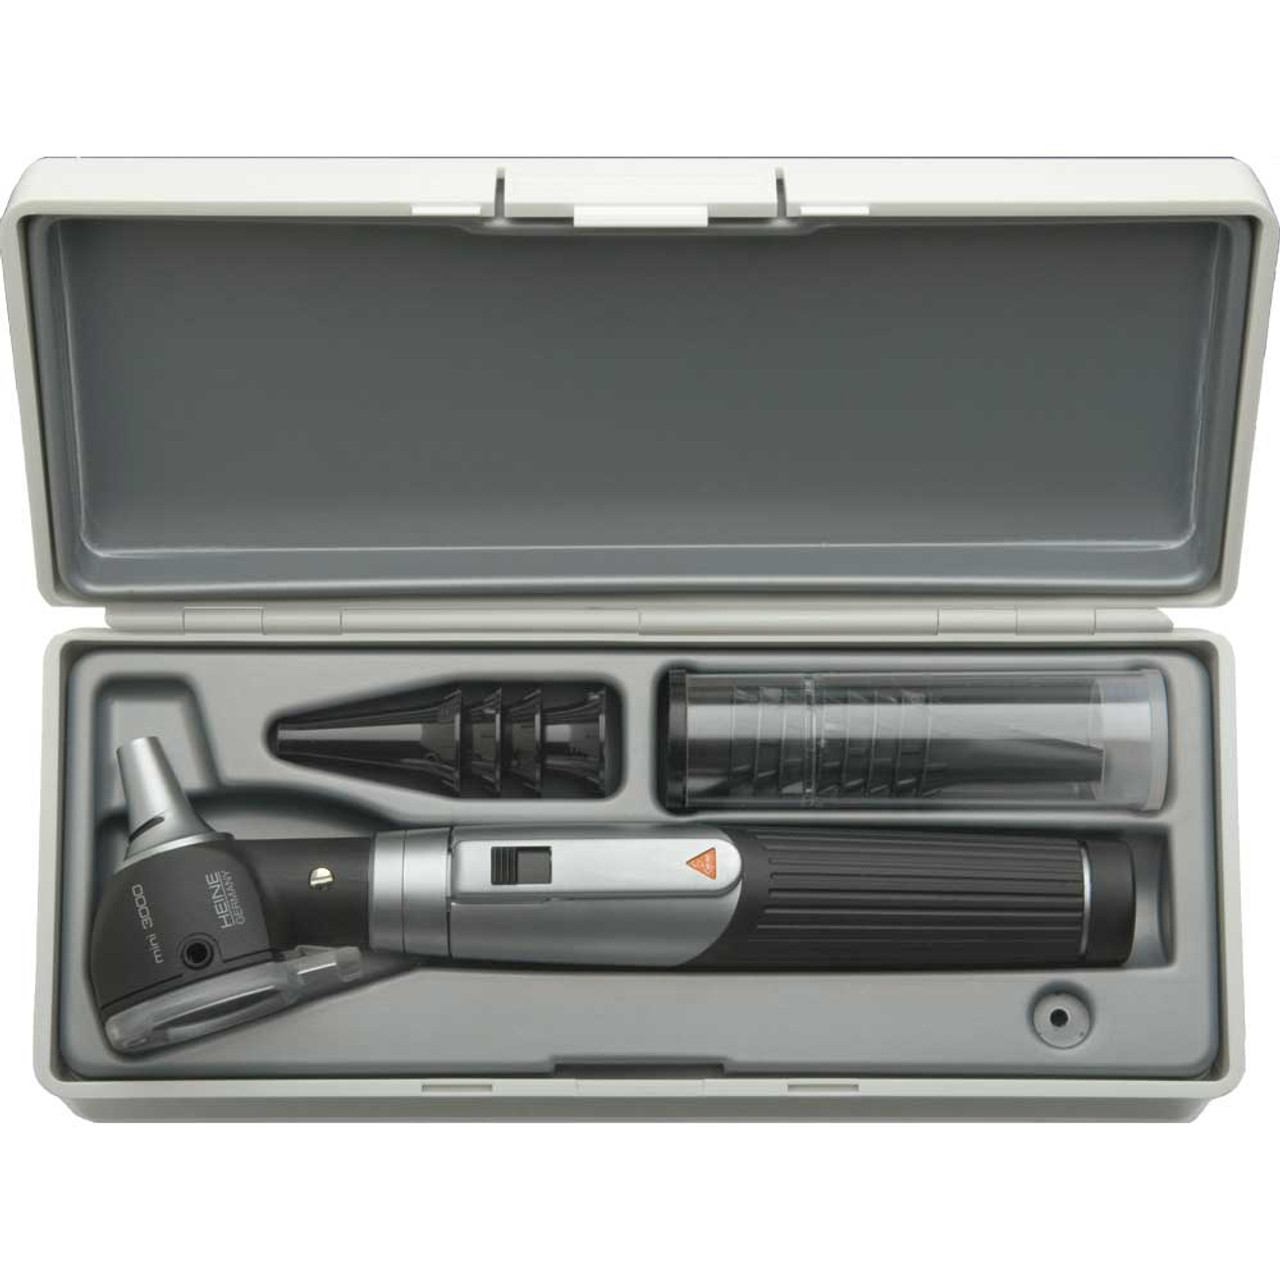 HEINE mini 3000 F.O. Fiber Optic Otoscope Set (D-851.10.021)